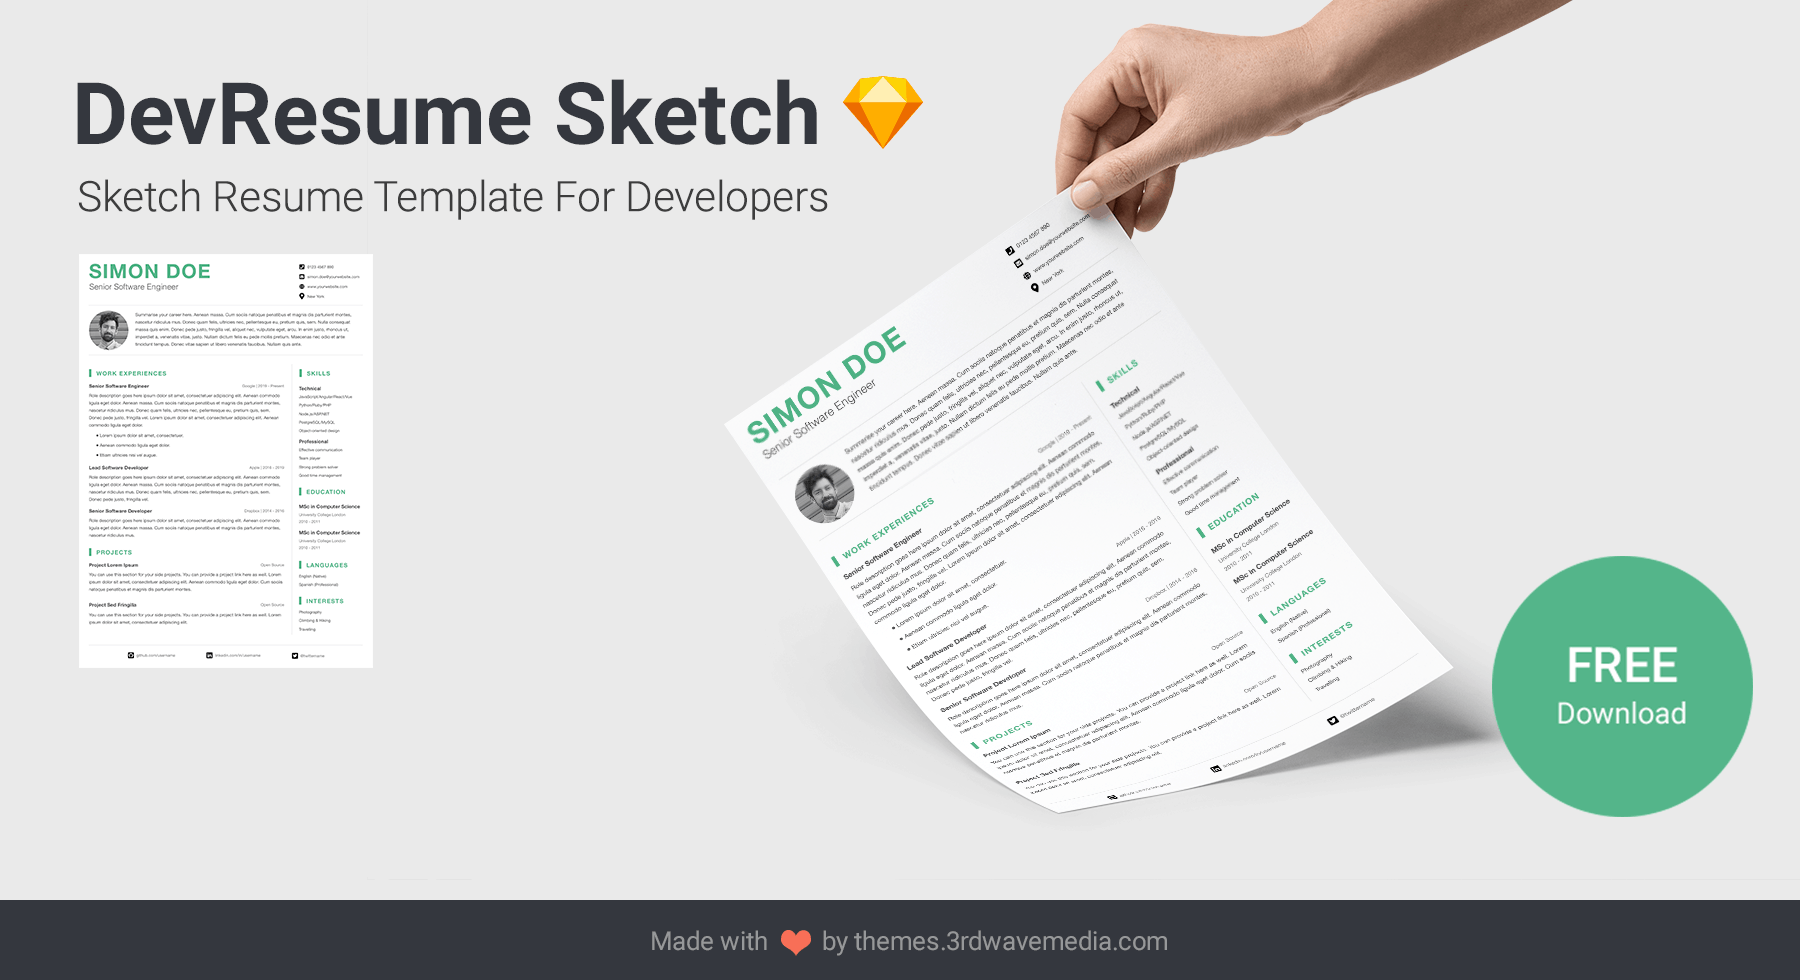 devresume-theme-sketch-template-promo